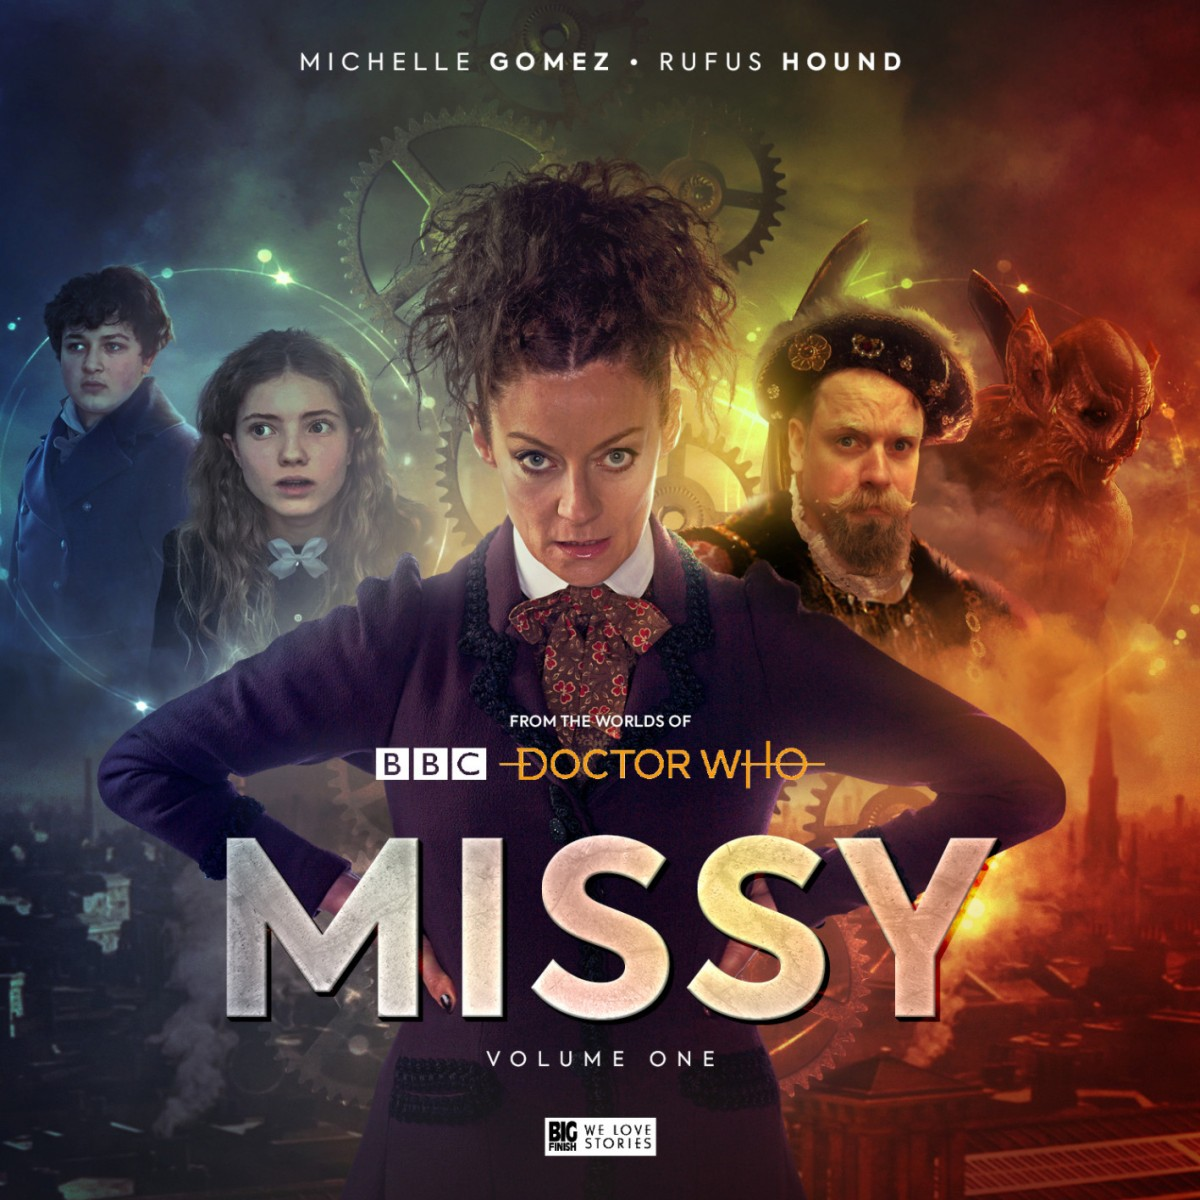 Missy Series 1 review on CultBox